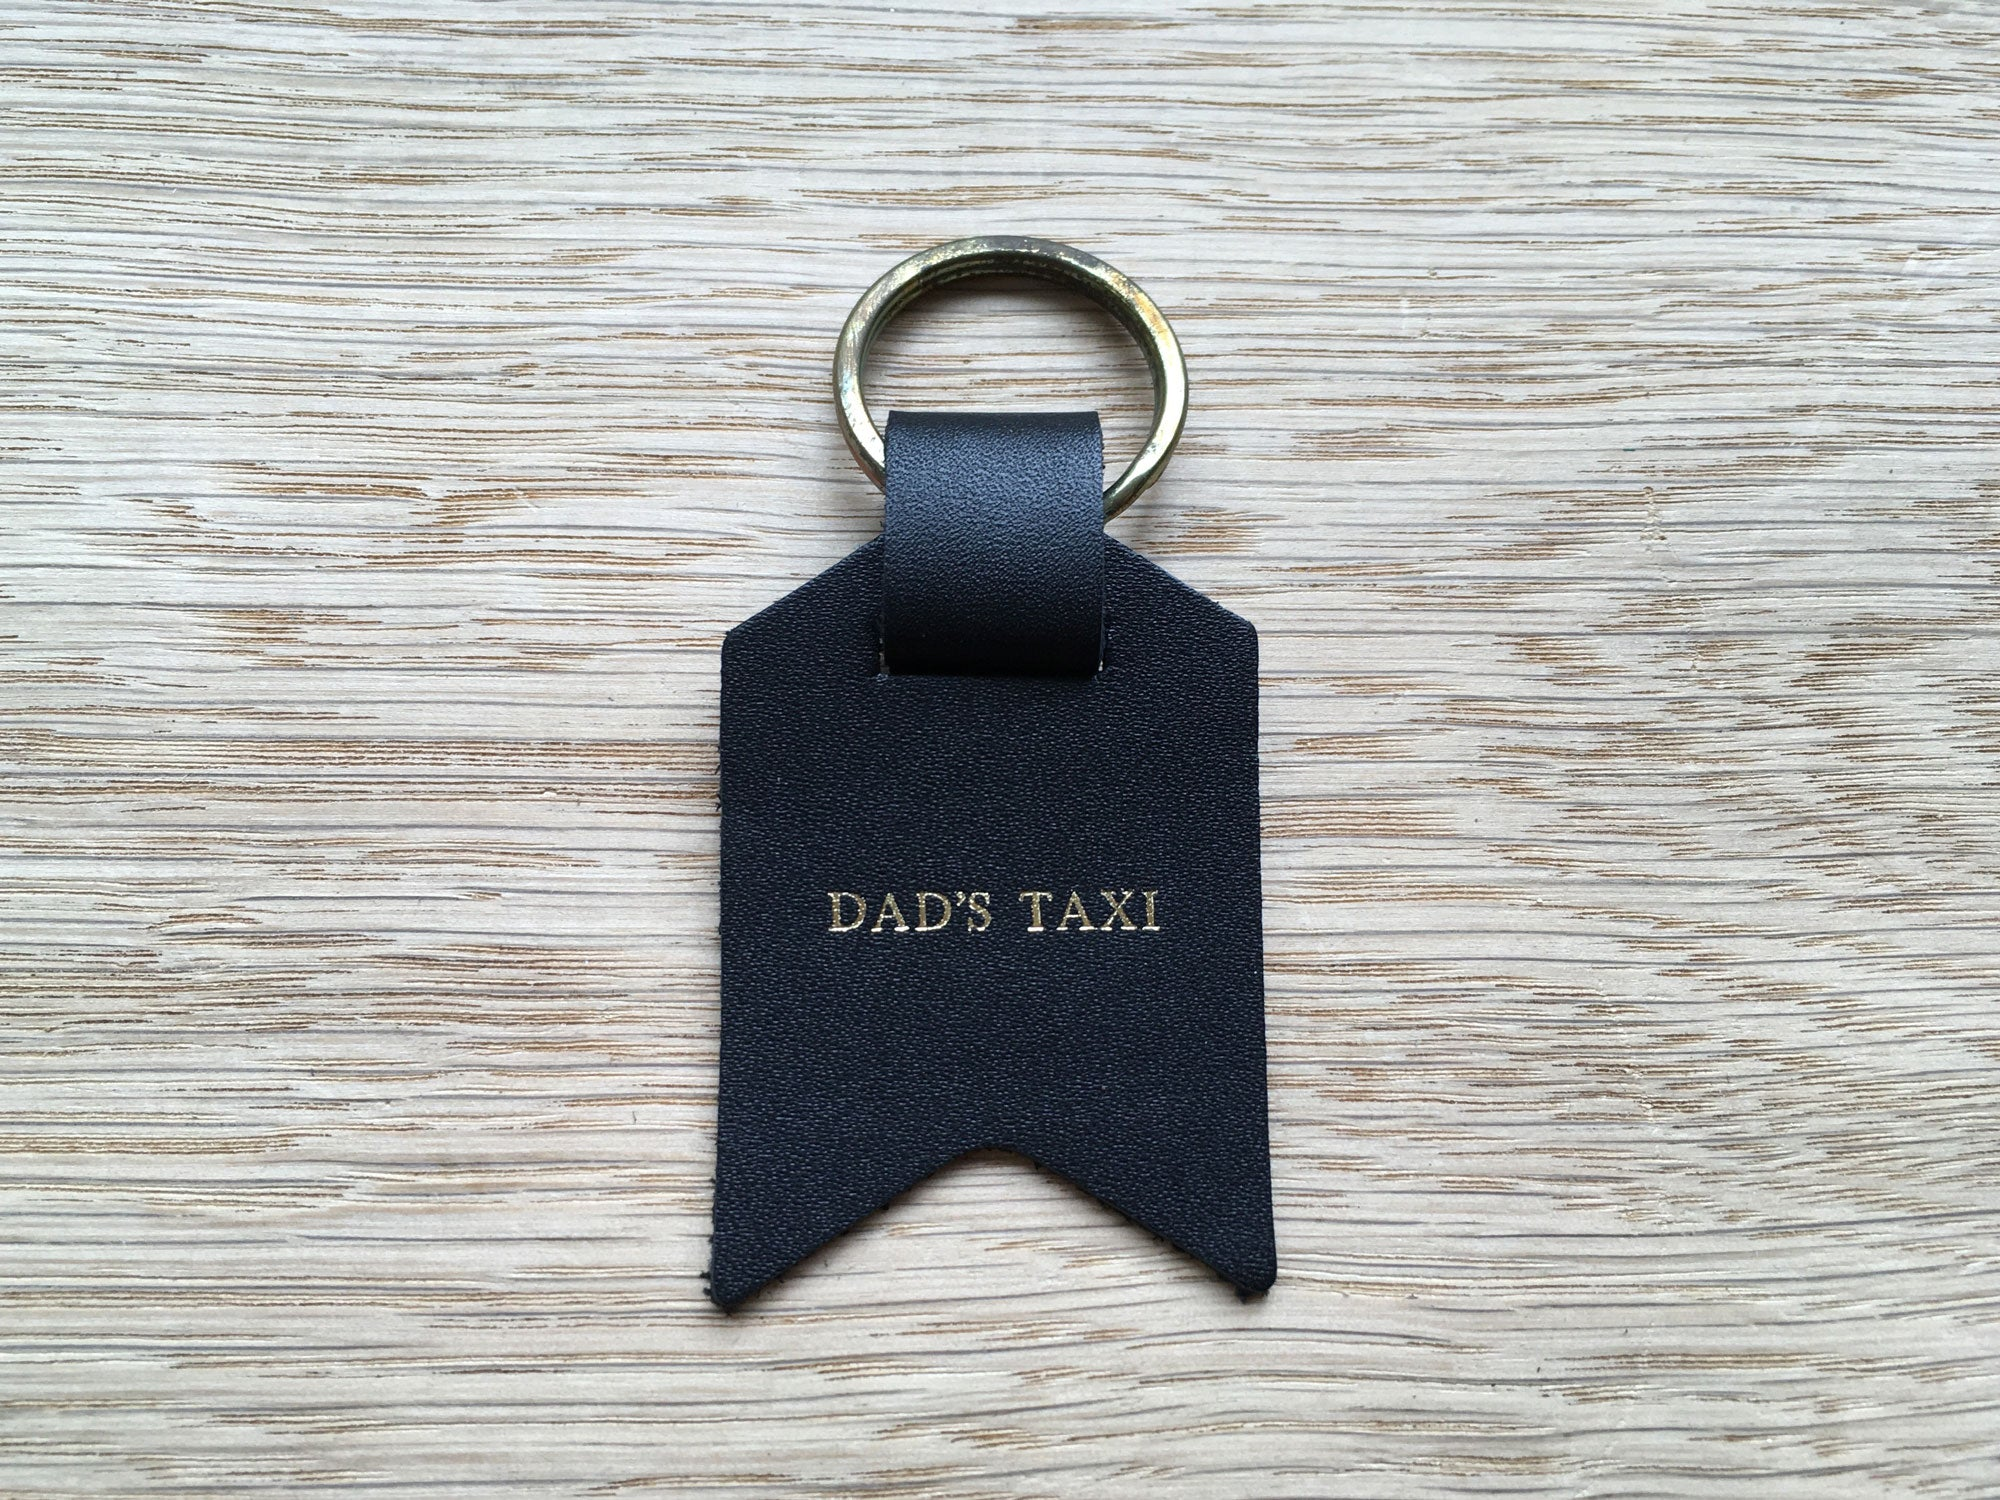 Also available – Dad's Taxi, Black Leather Keyring